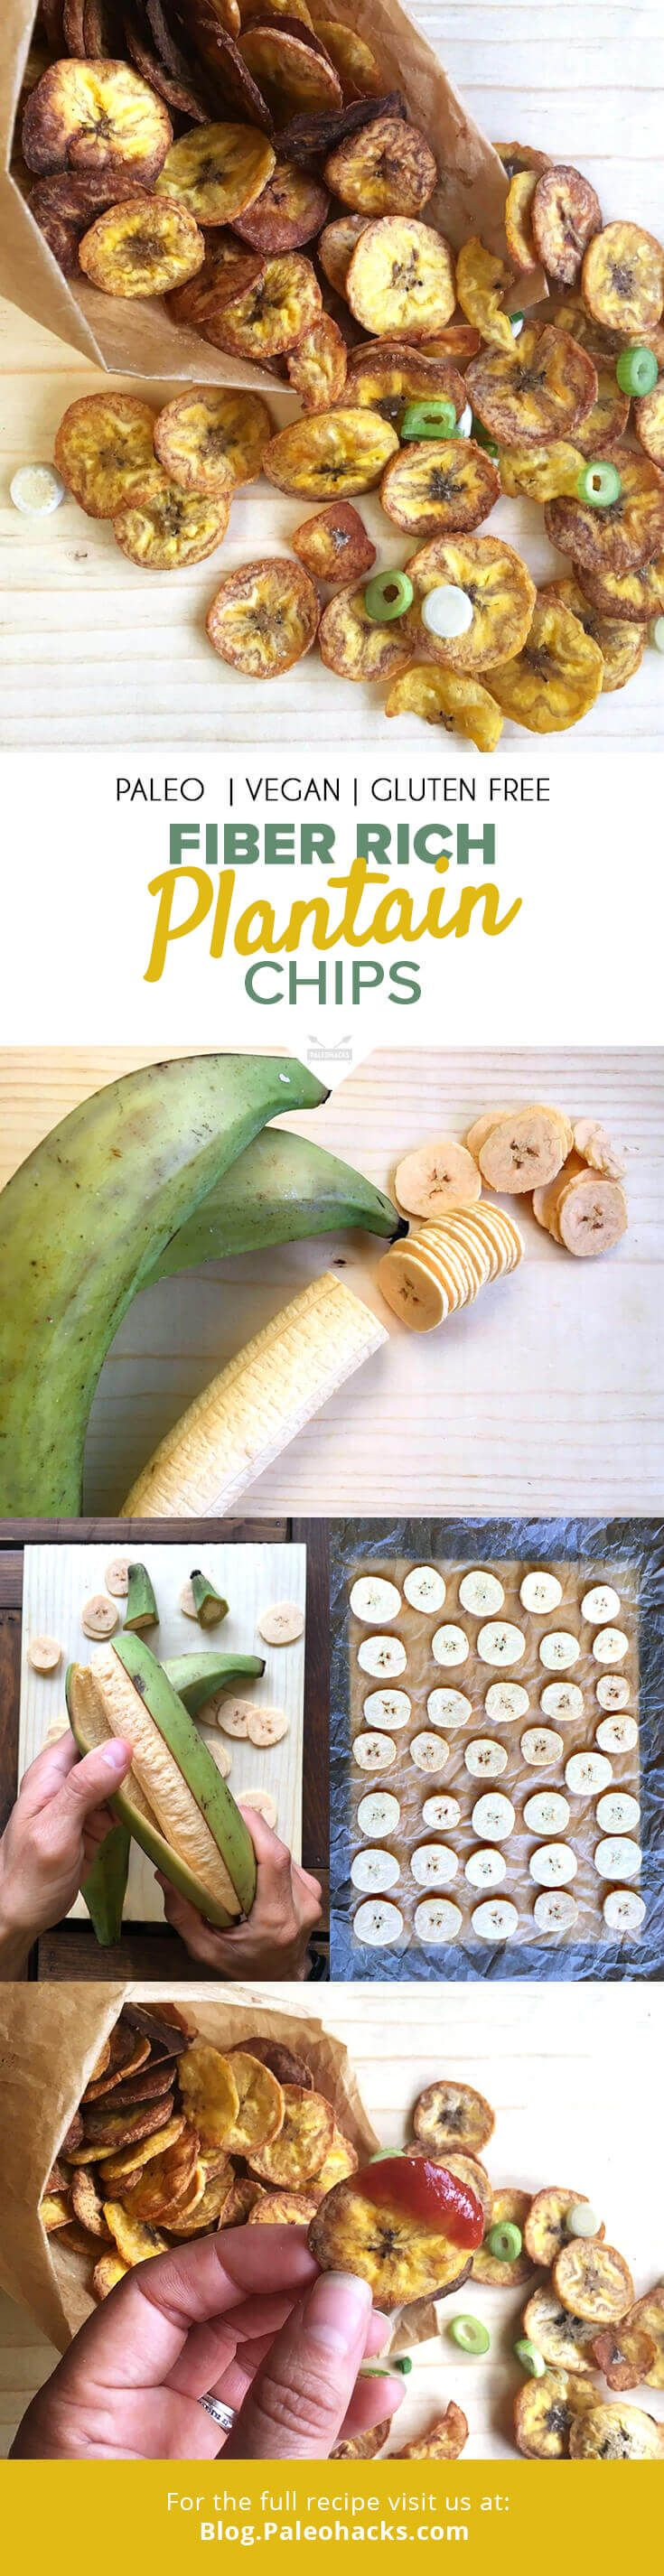 If you have a soft spot for savory, crunchy food, then these plantain chips are your new best friend. For the full recipe visit us here: http://paleo.co/platainchips